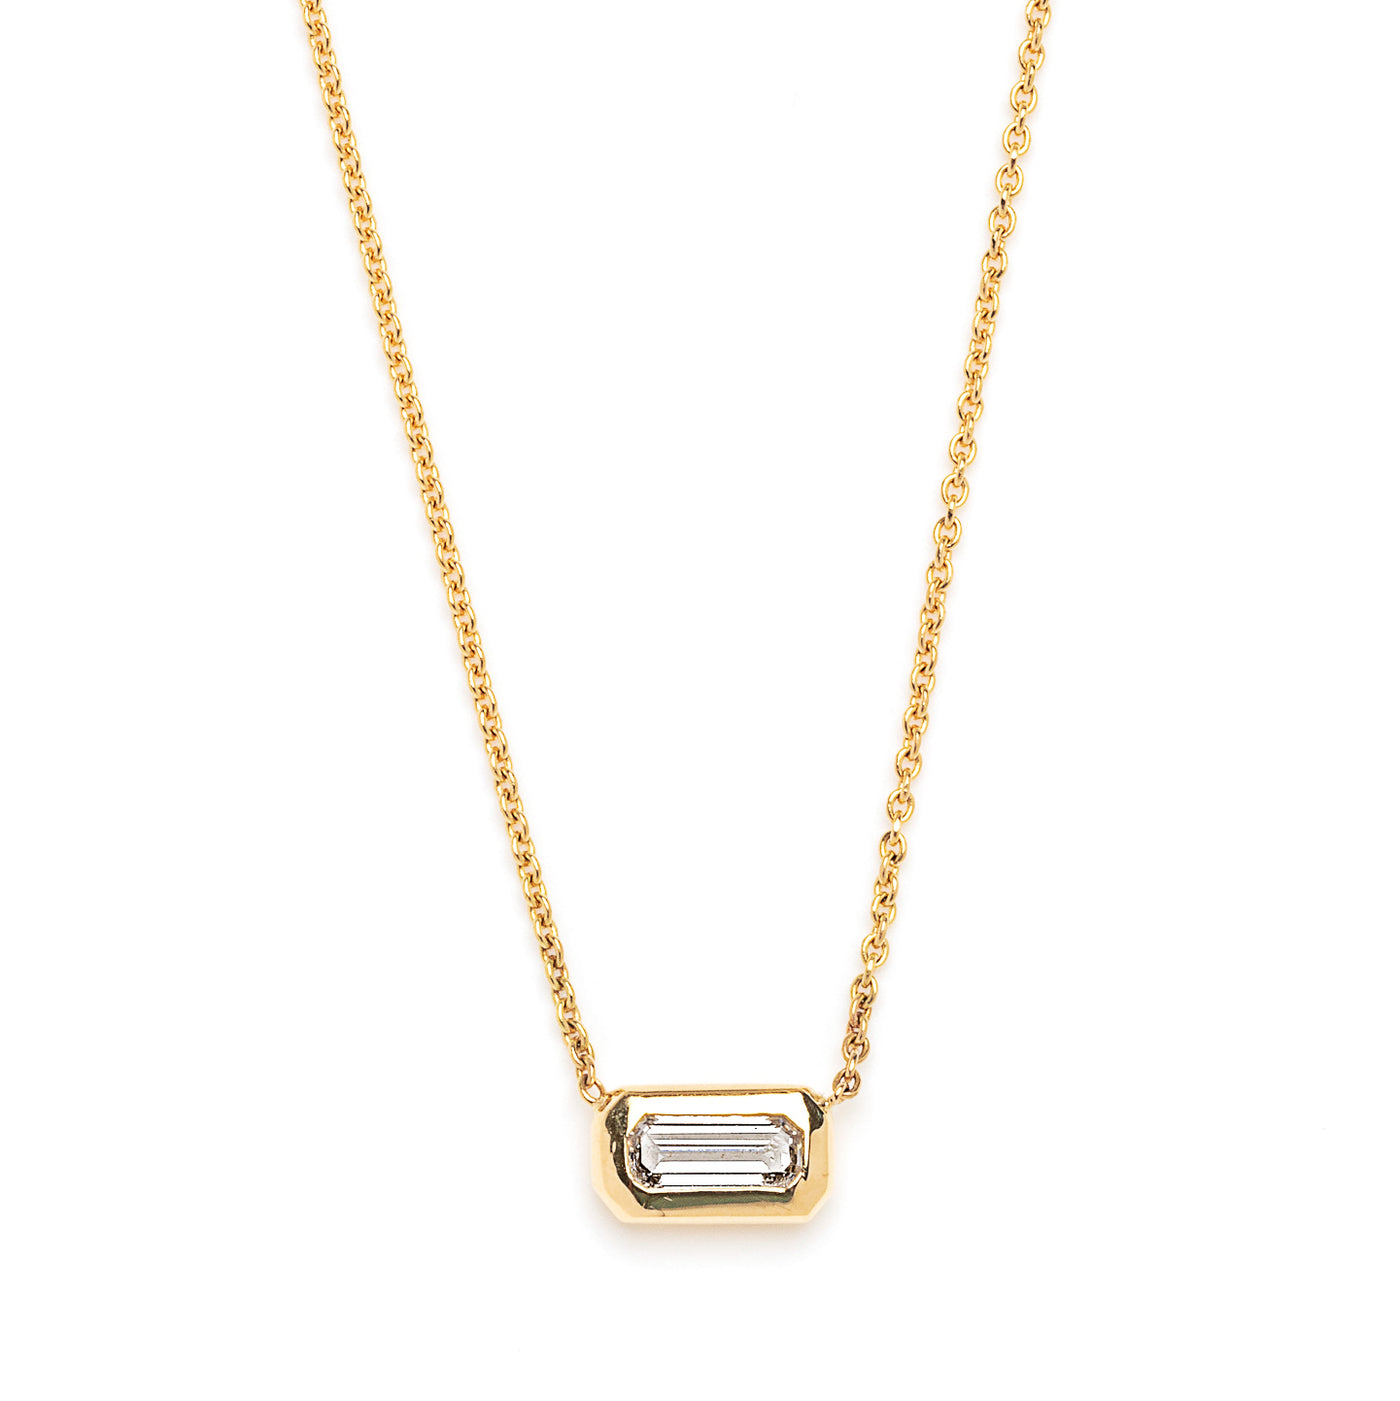 elongated emerald cut diamond necklace